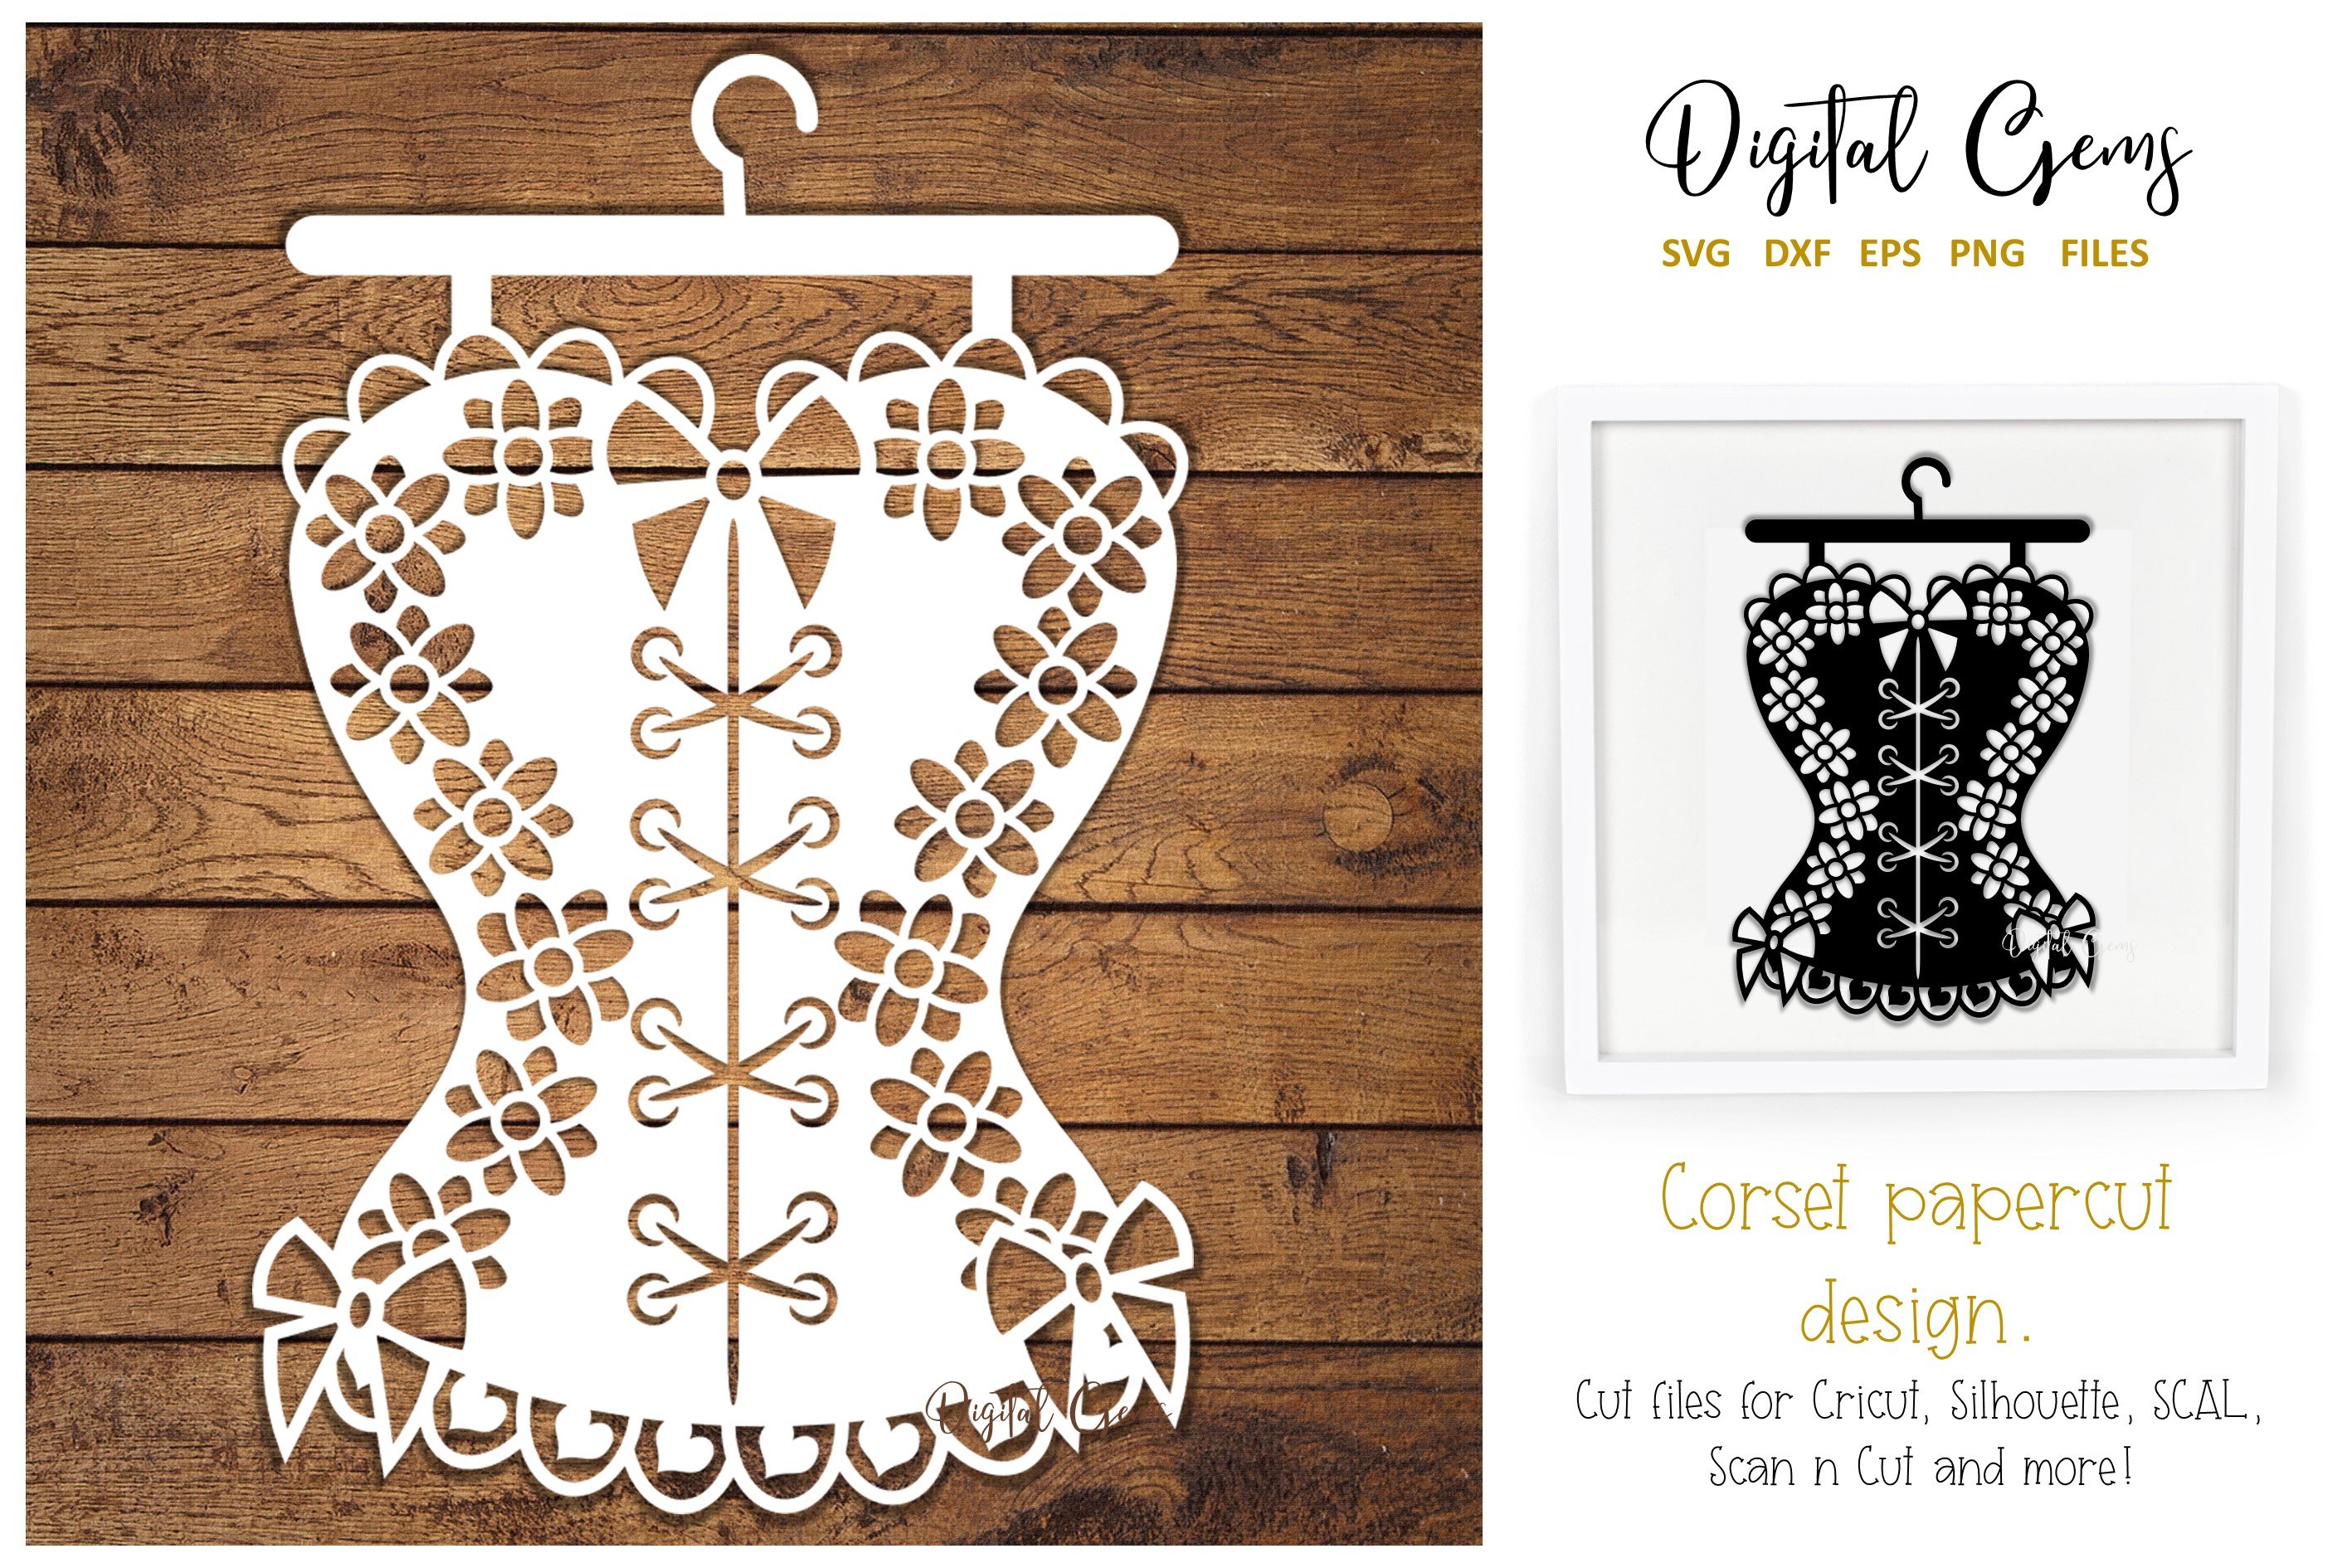 Download Free Corset Paper Cut Design Graphic By Digital Gems Creative Fabrica for Cricut Explore, Silhouette and other cutting machines.